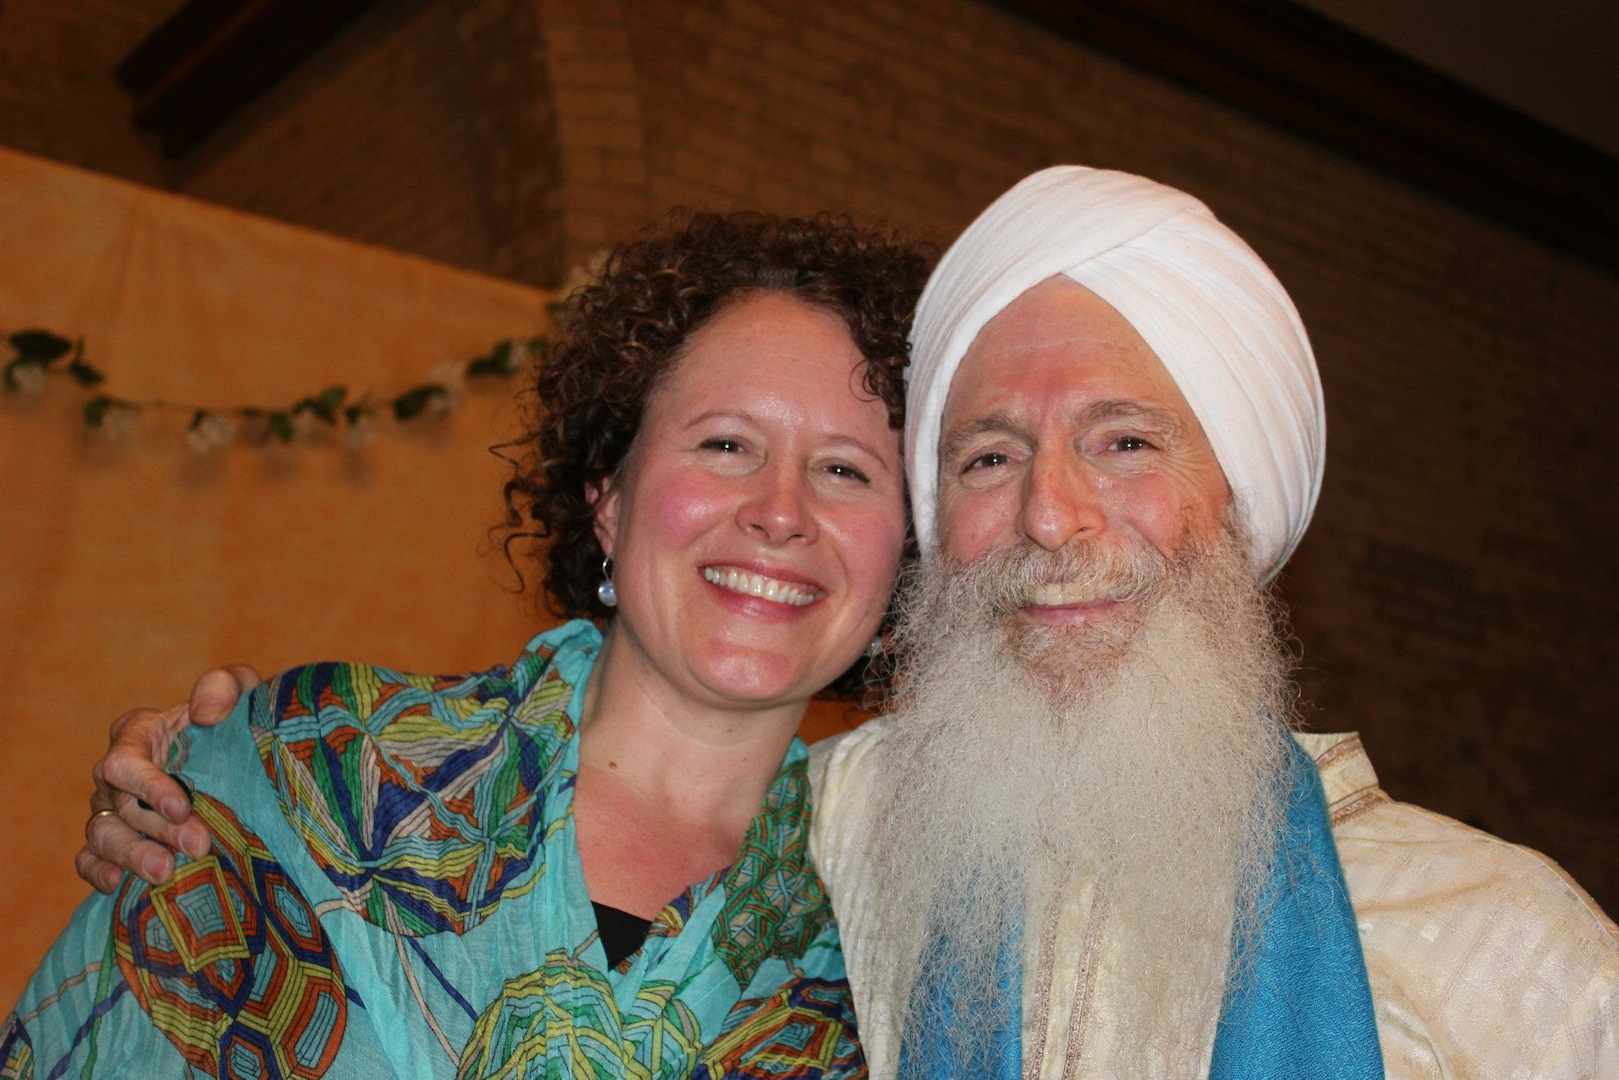 Guruganesha and Brenda in Toronto